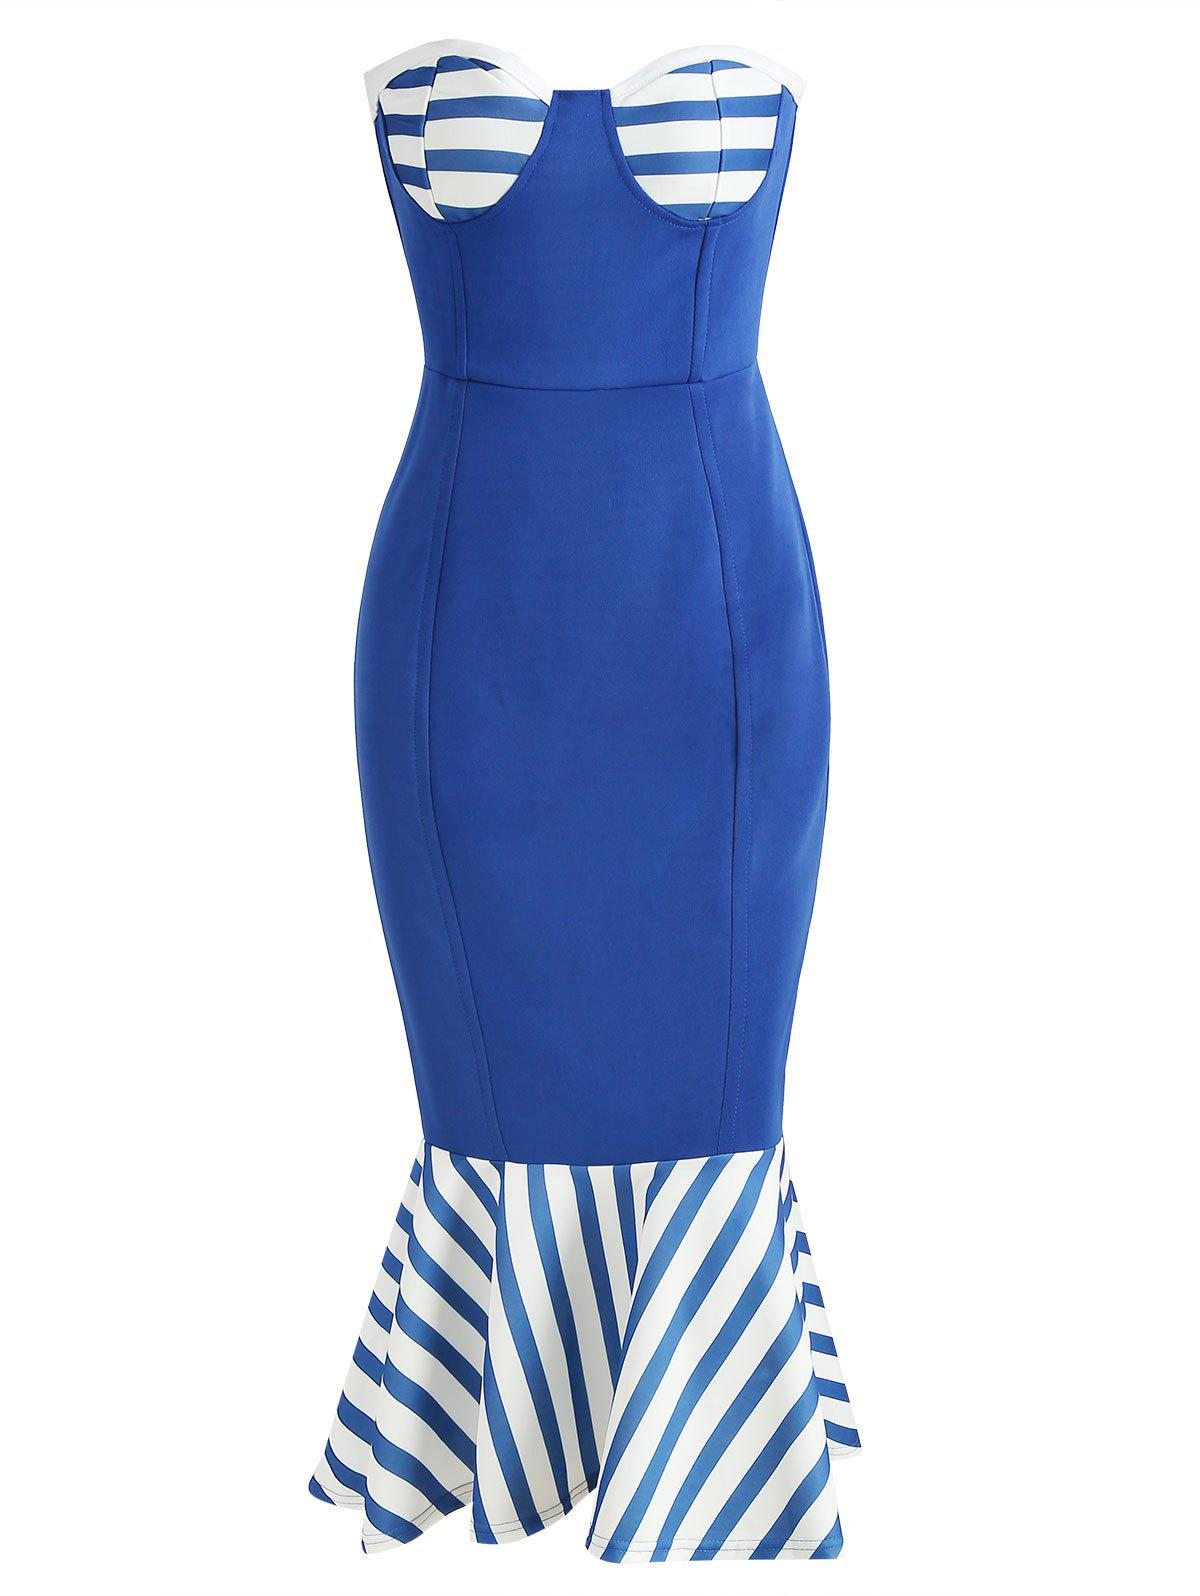 Store Nautical Strapless Flounce Bodycon Dress